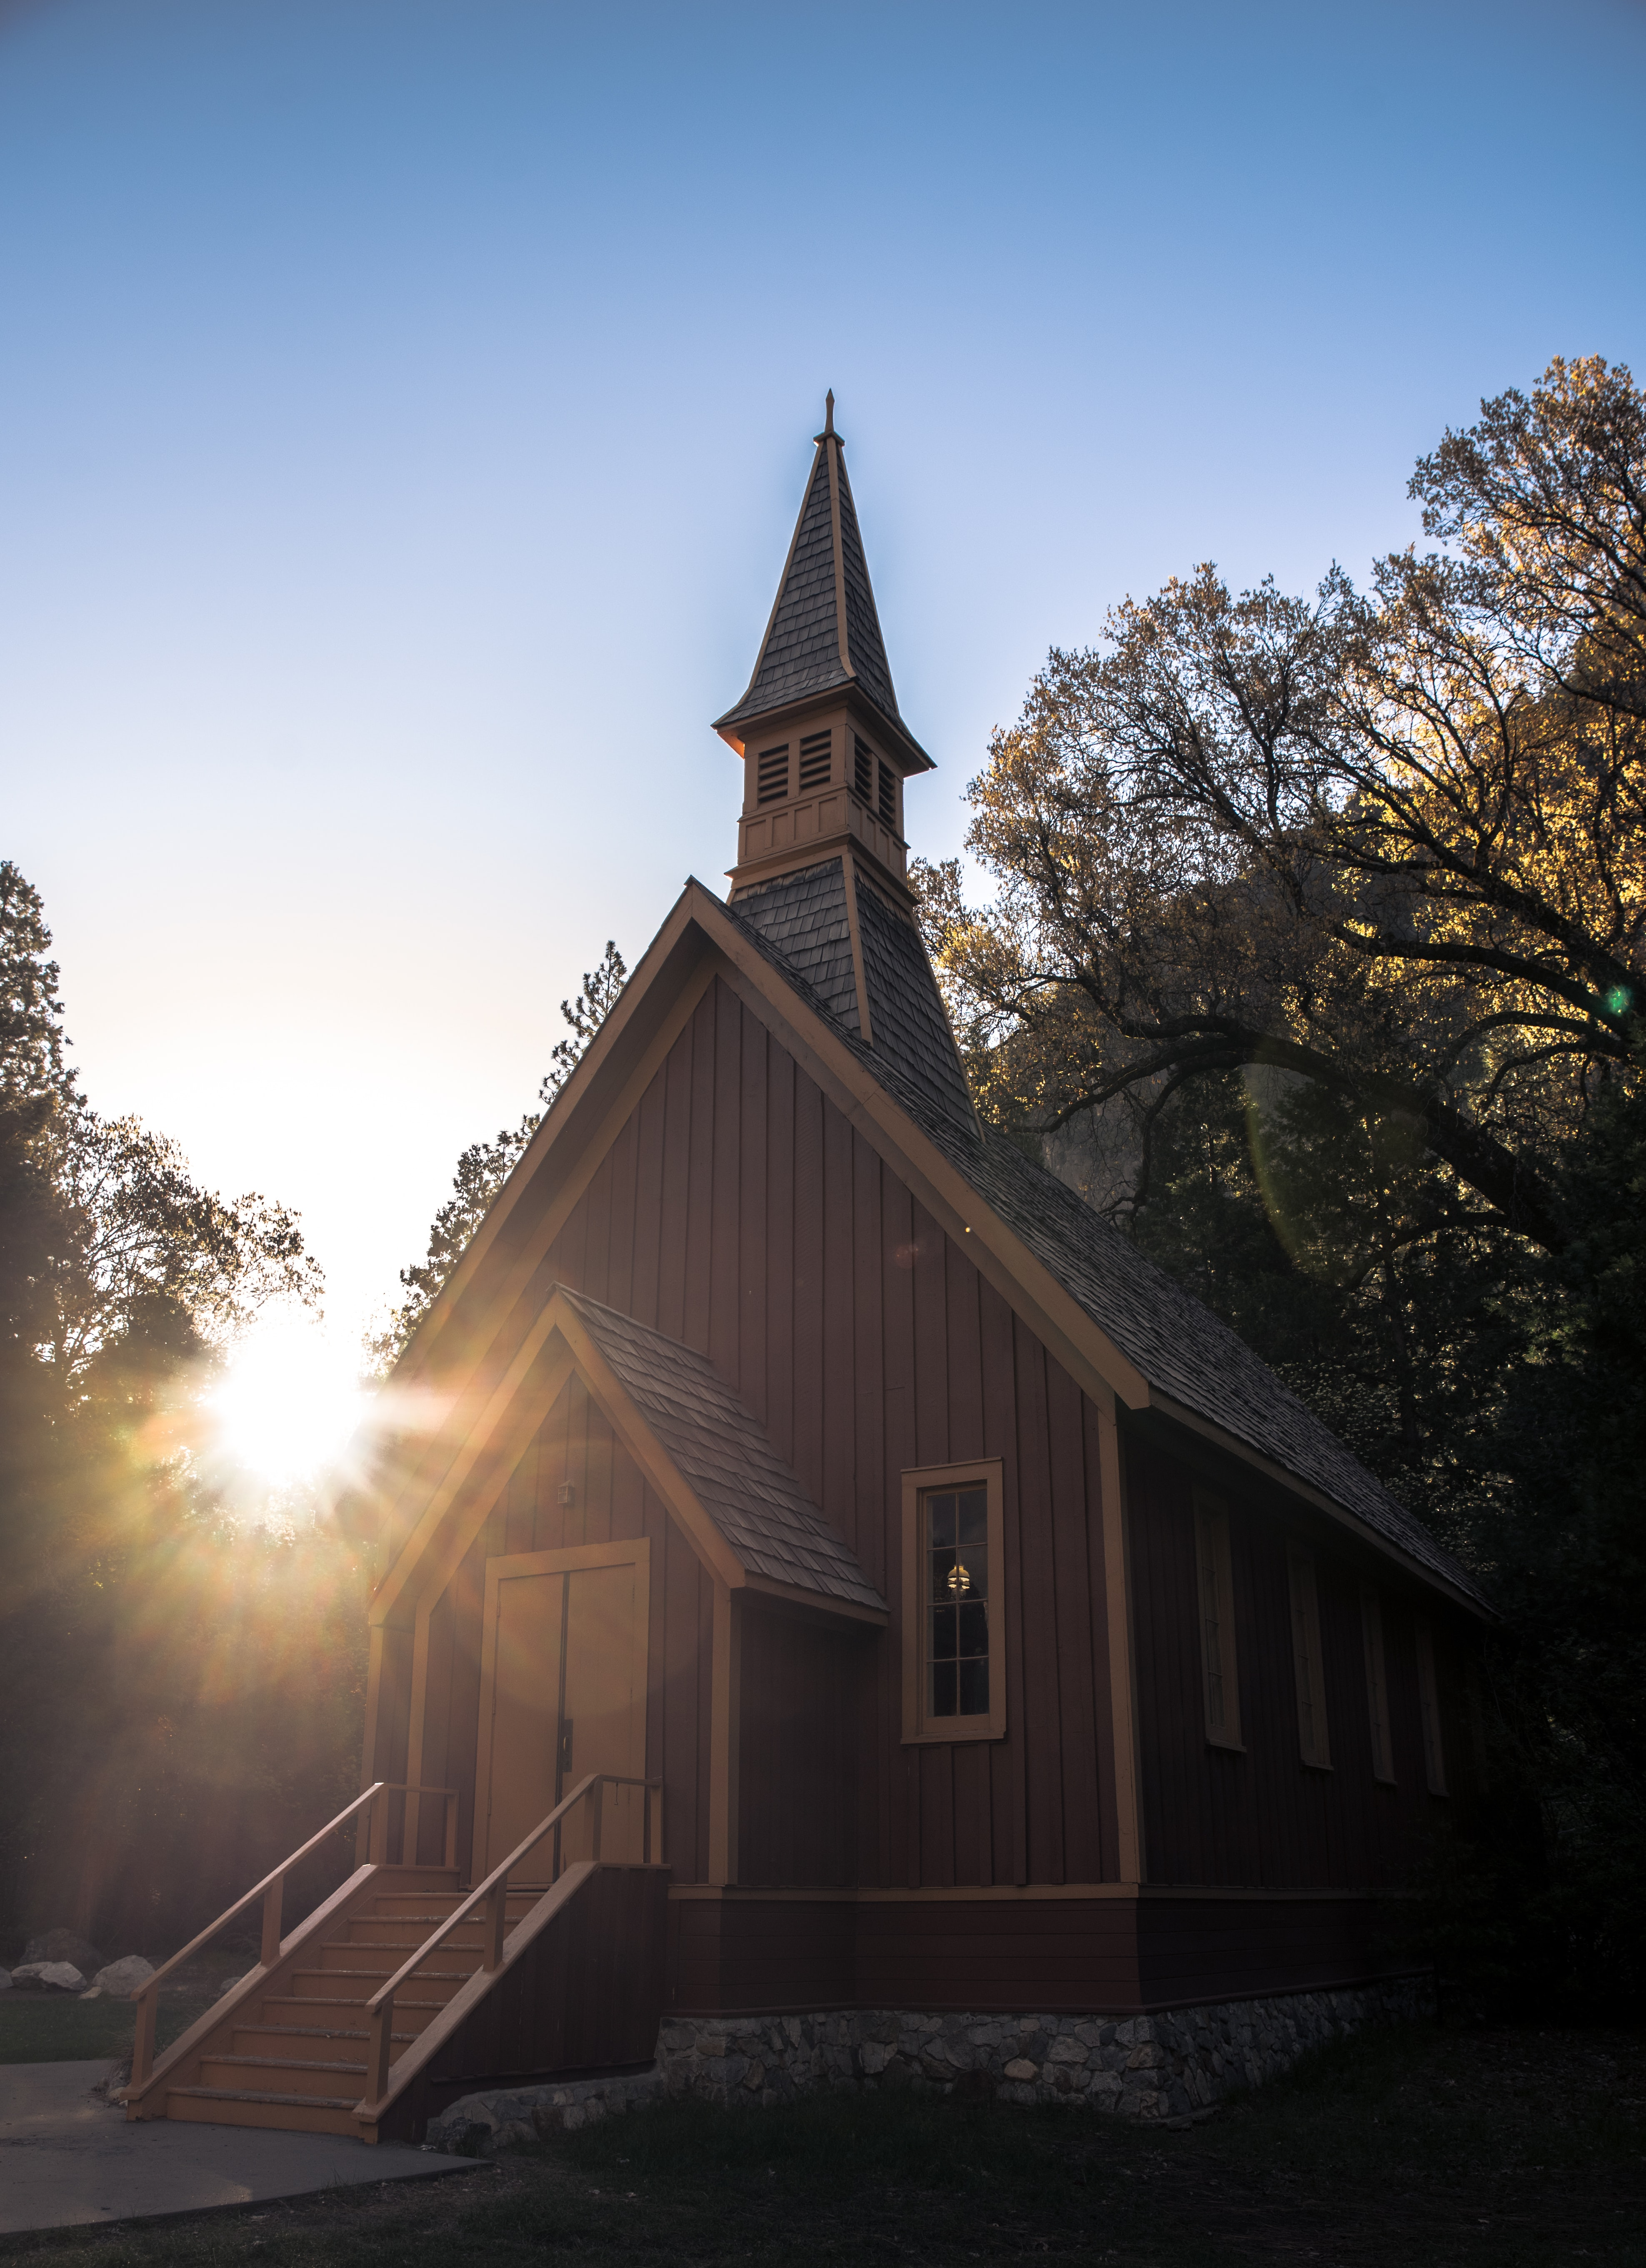 A small church building surrounded by trees, with the sunset in the background.